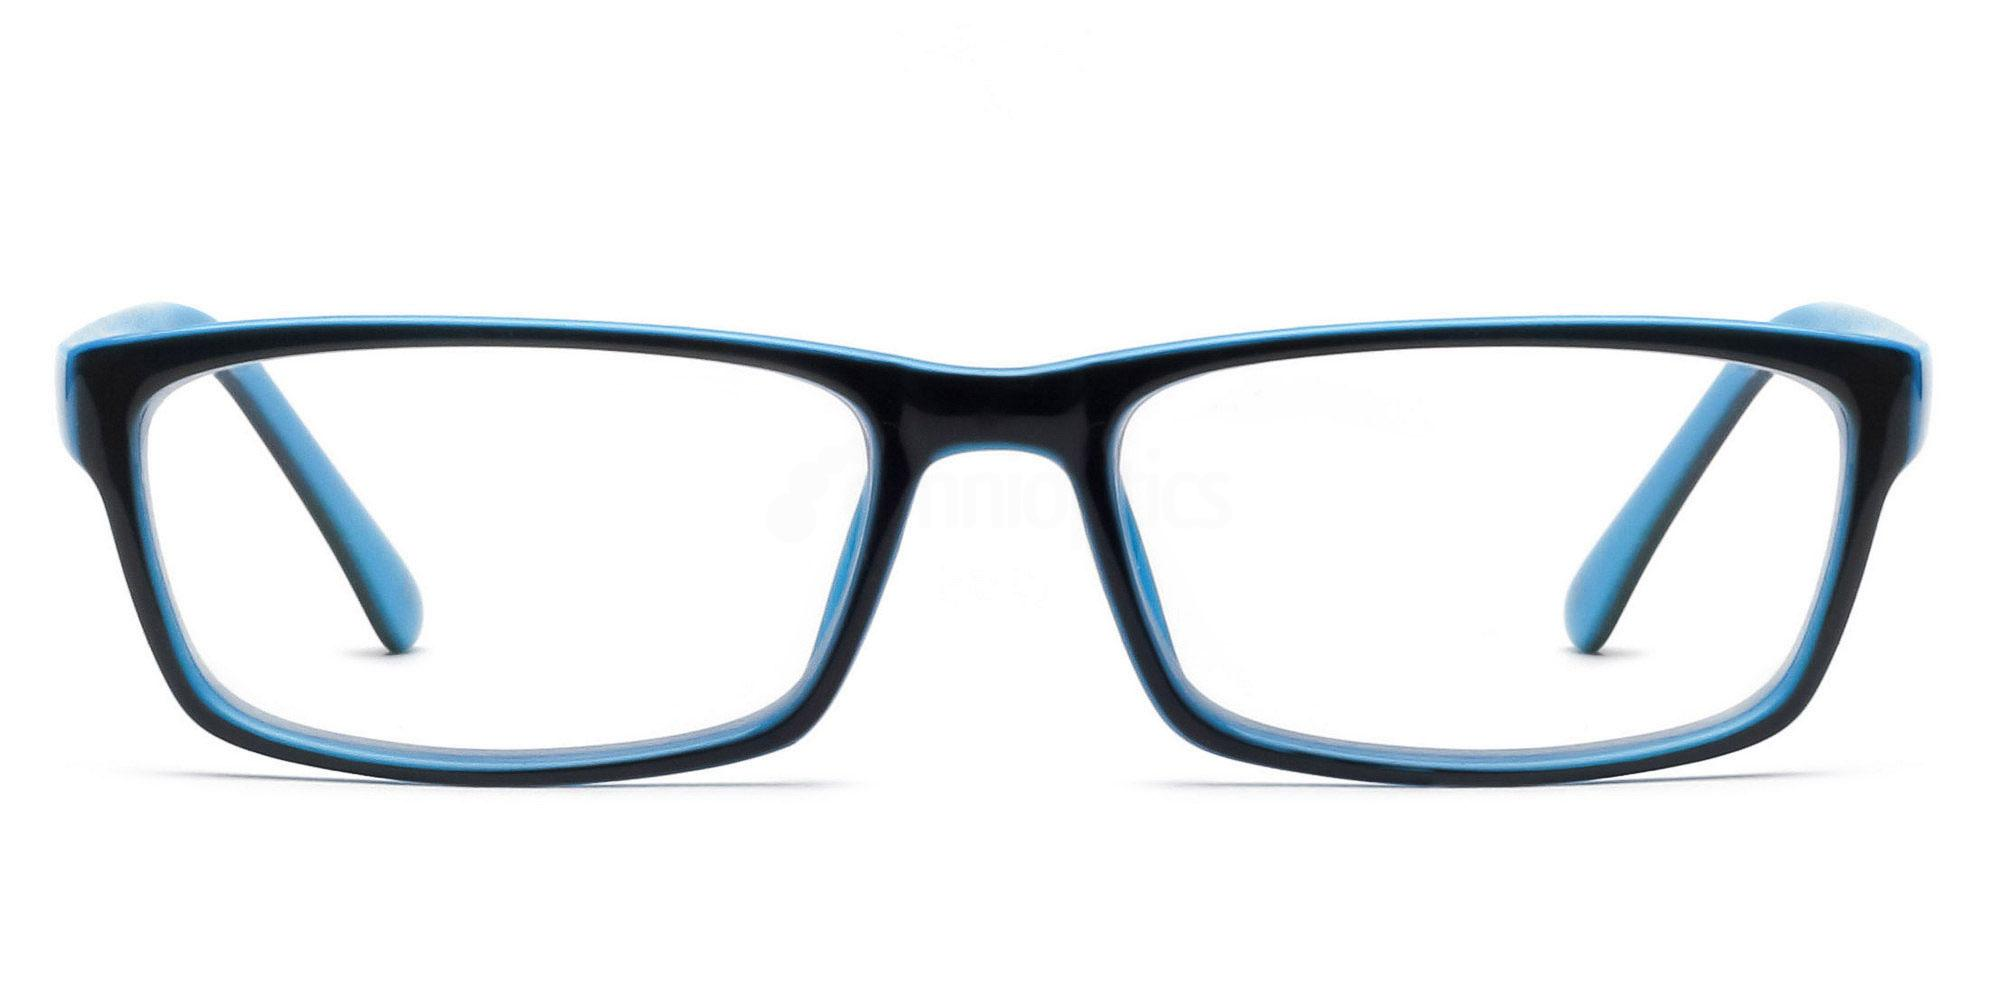 COL.25 2426 - Black and Blue Glasses, Savannah